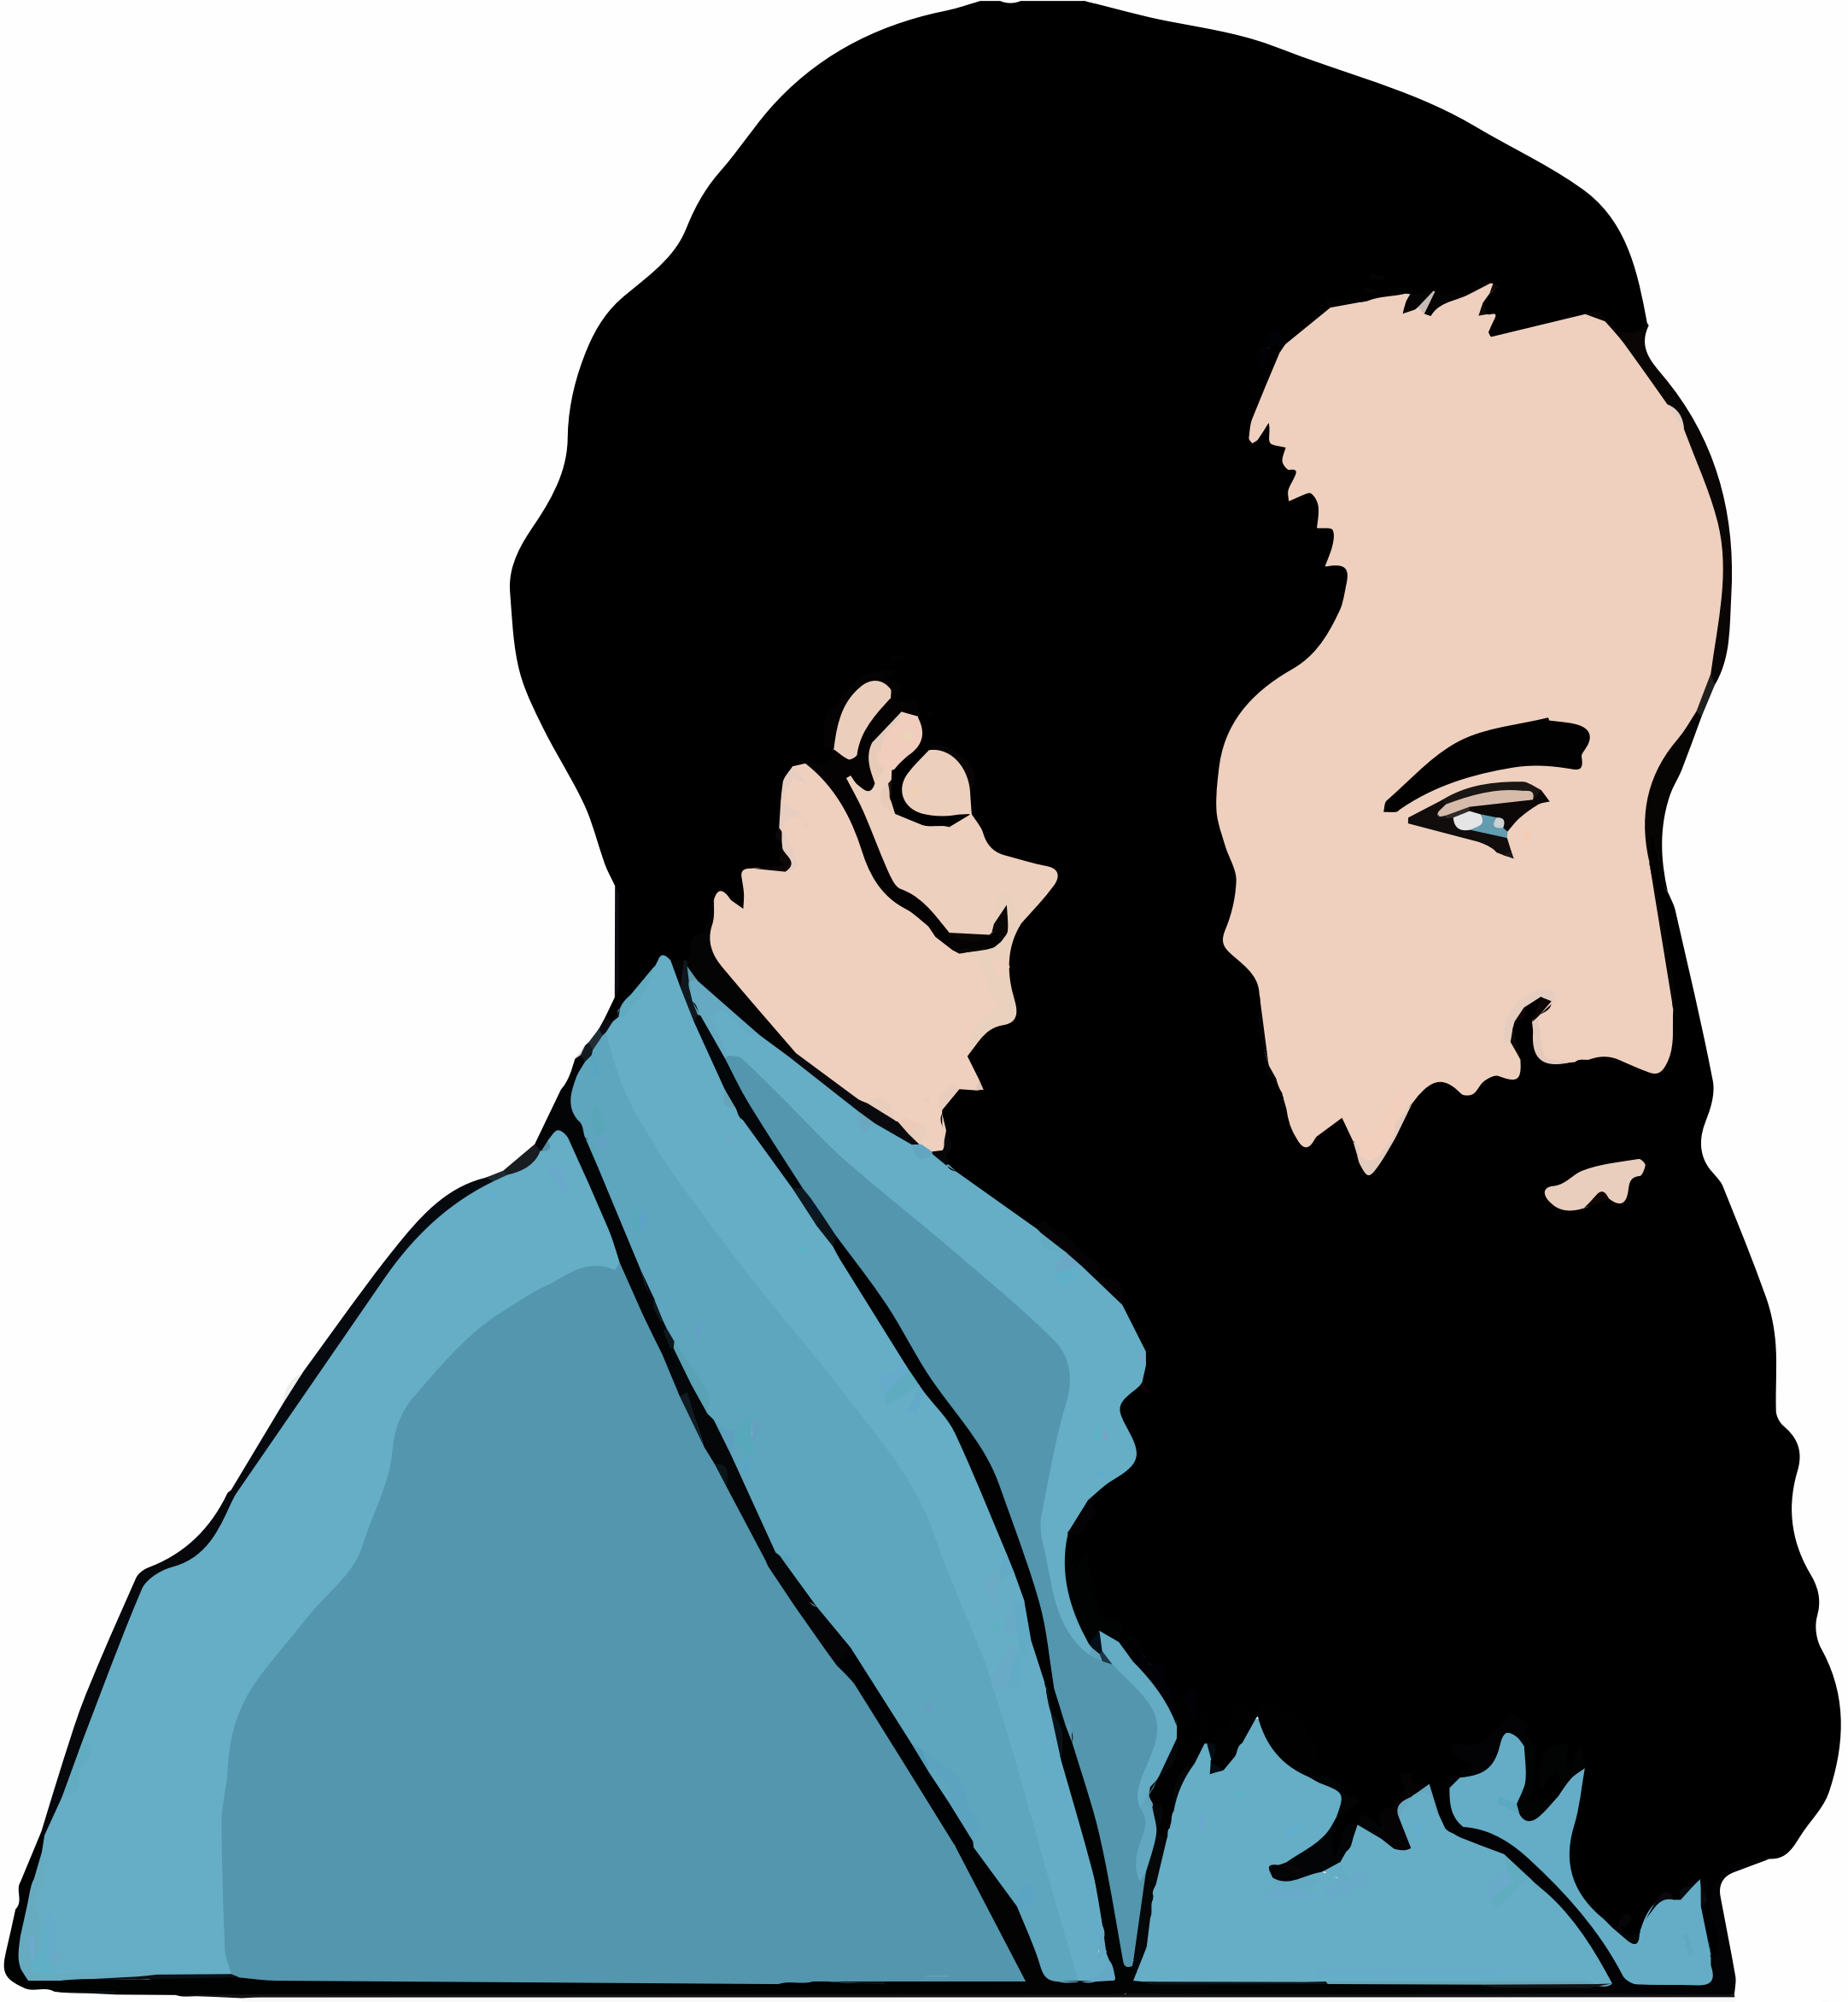 james clerk maxwell by cactus cowboy